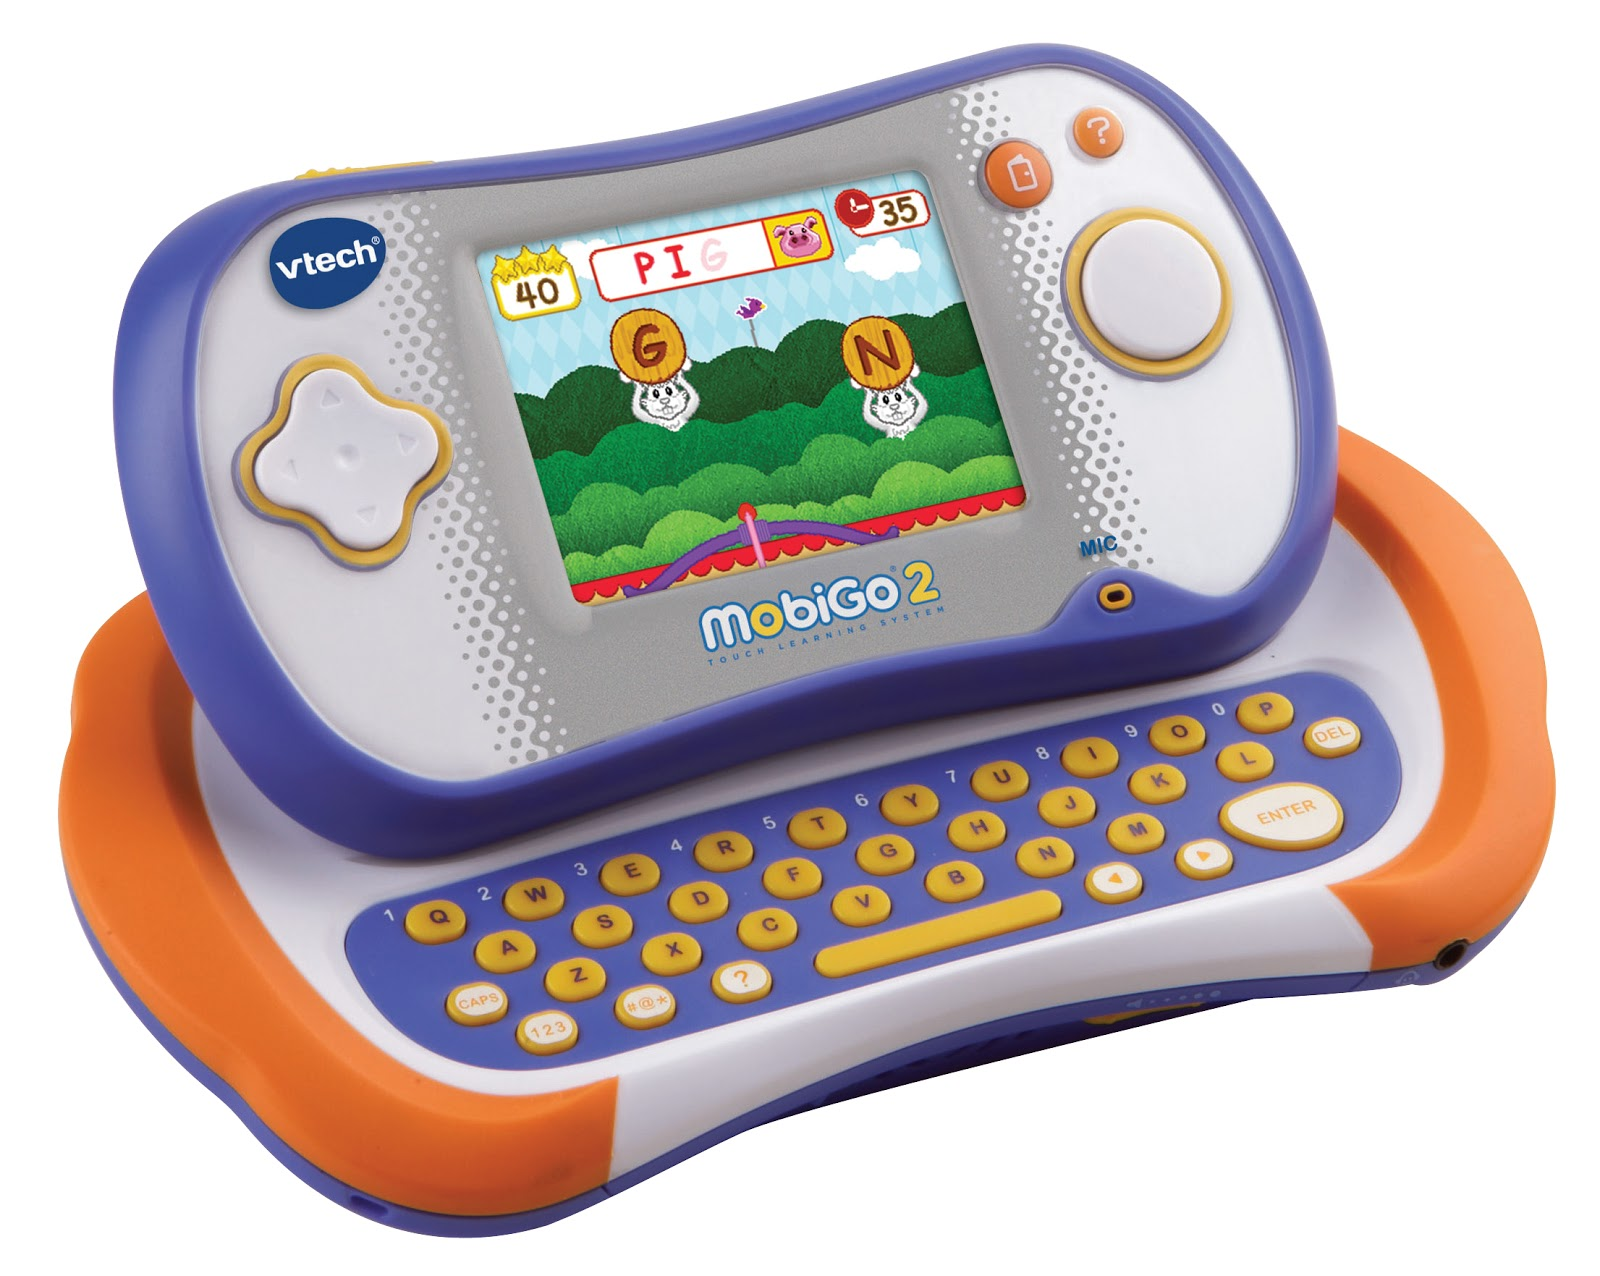 Educational Toys For Toddlers Age 2 : Top tech gift picks for ages fort worth star